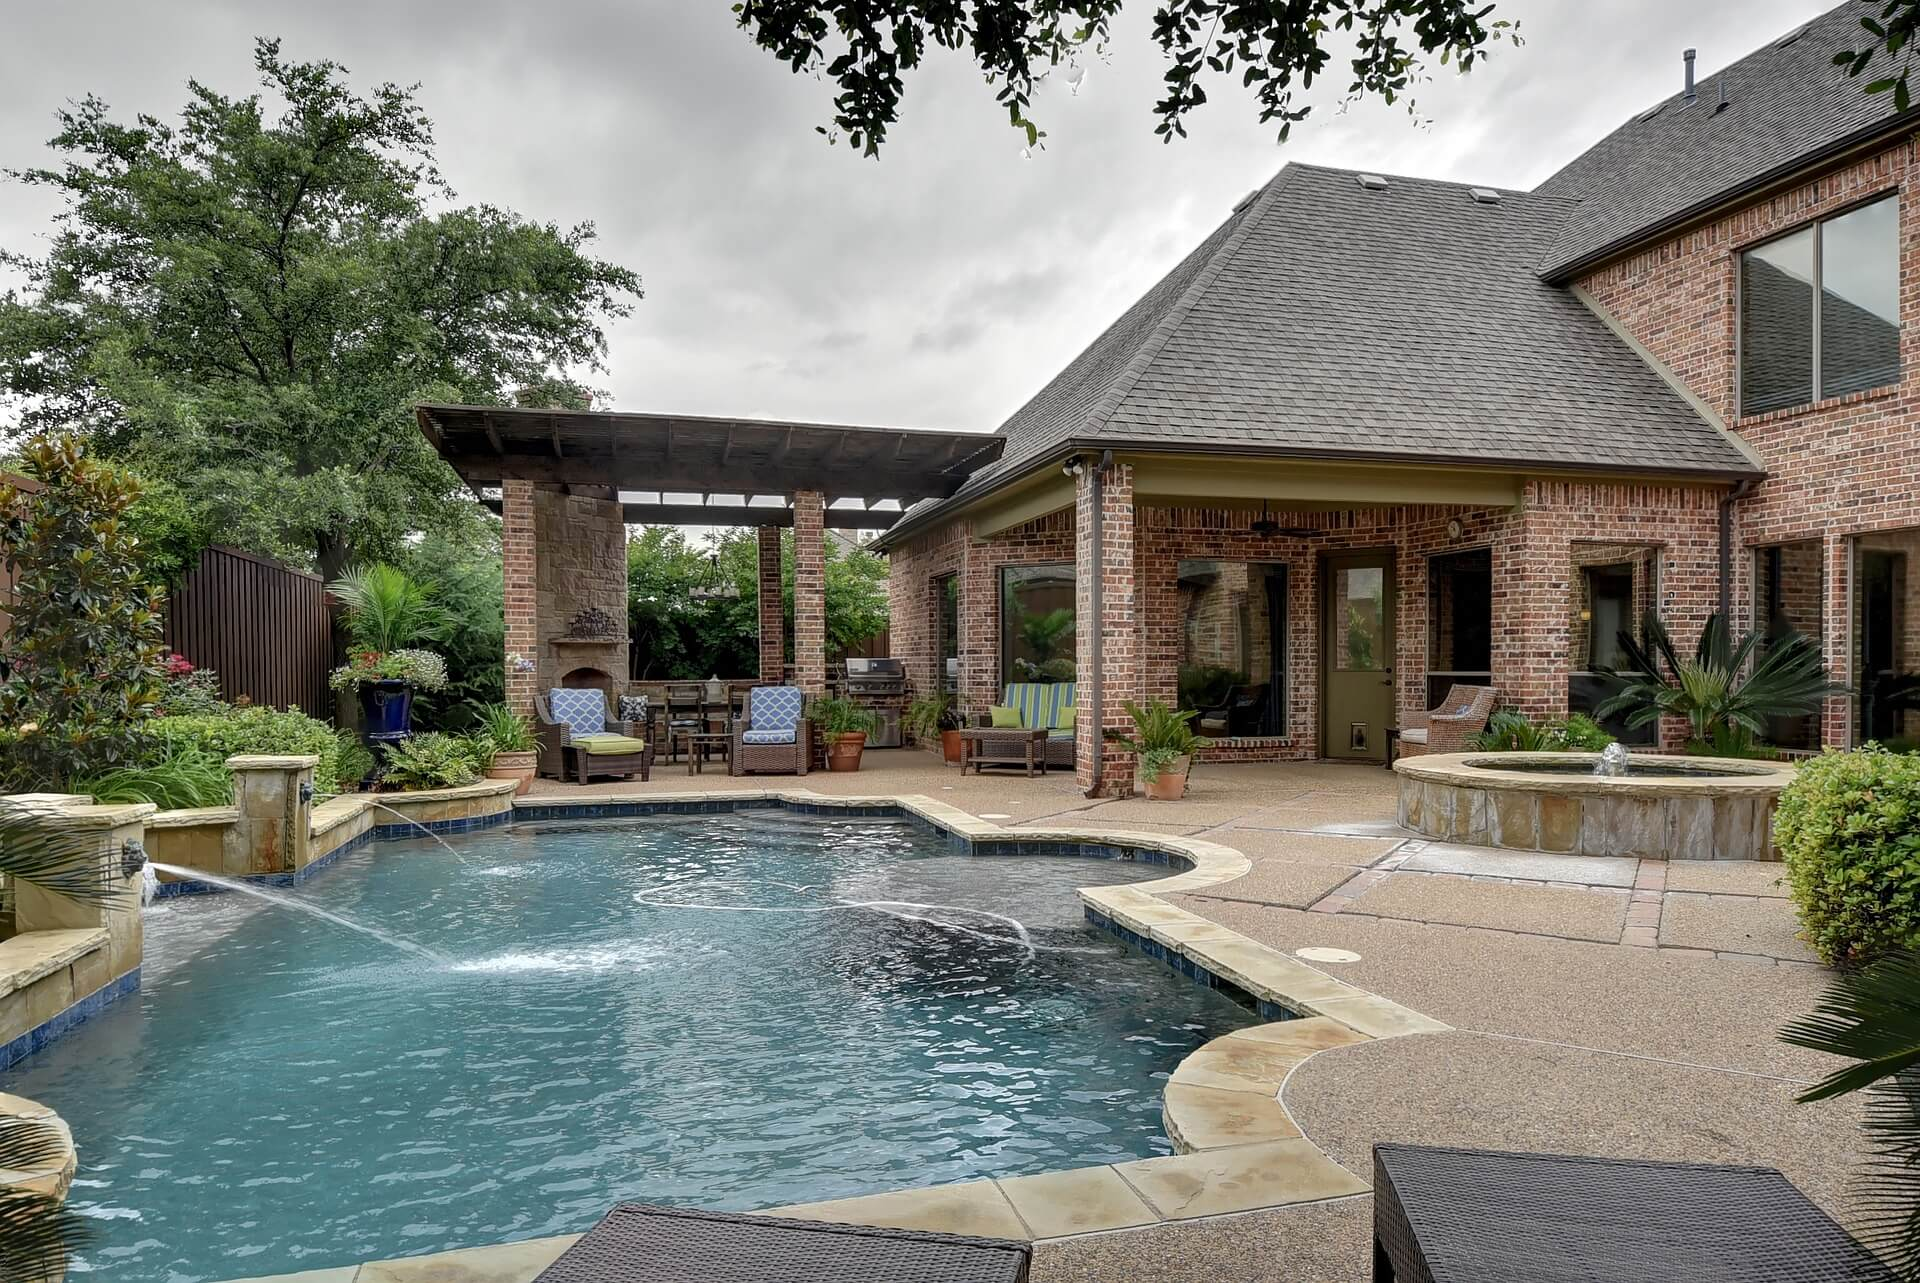 A luxurious pool with fountains next to a large brick home